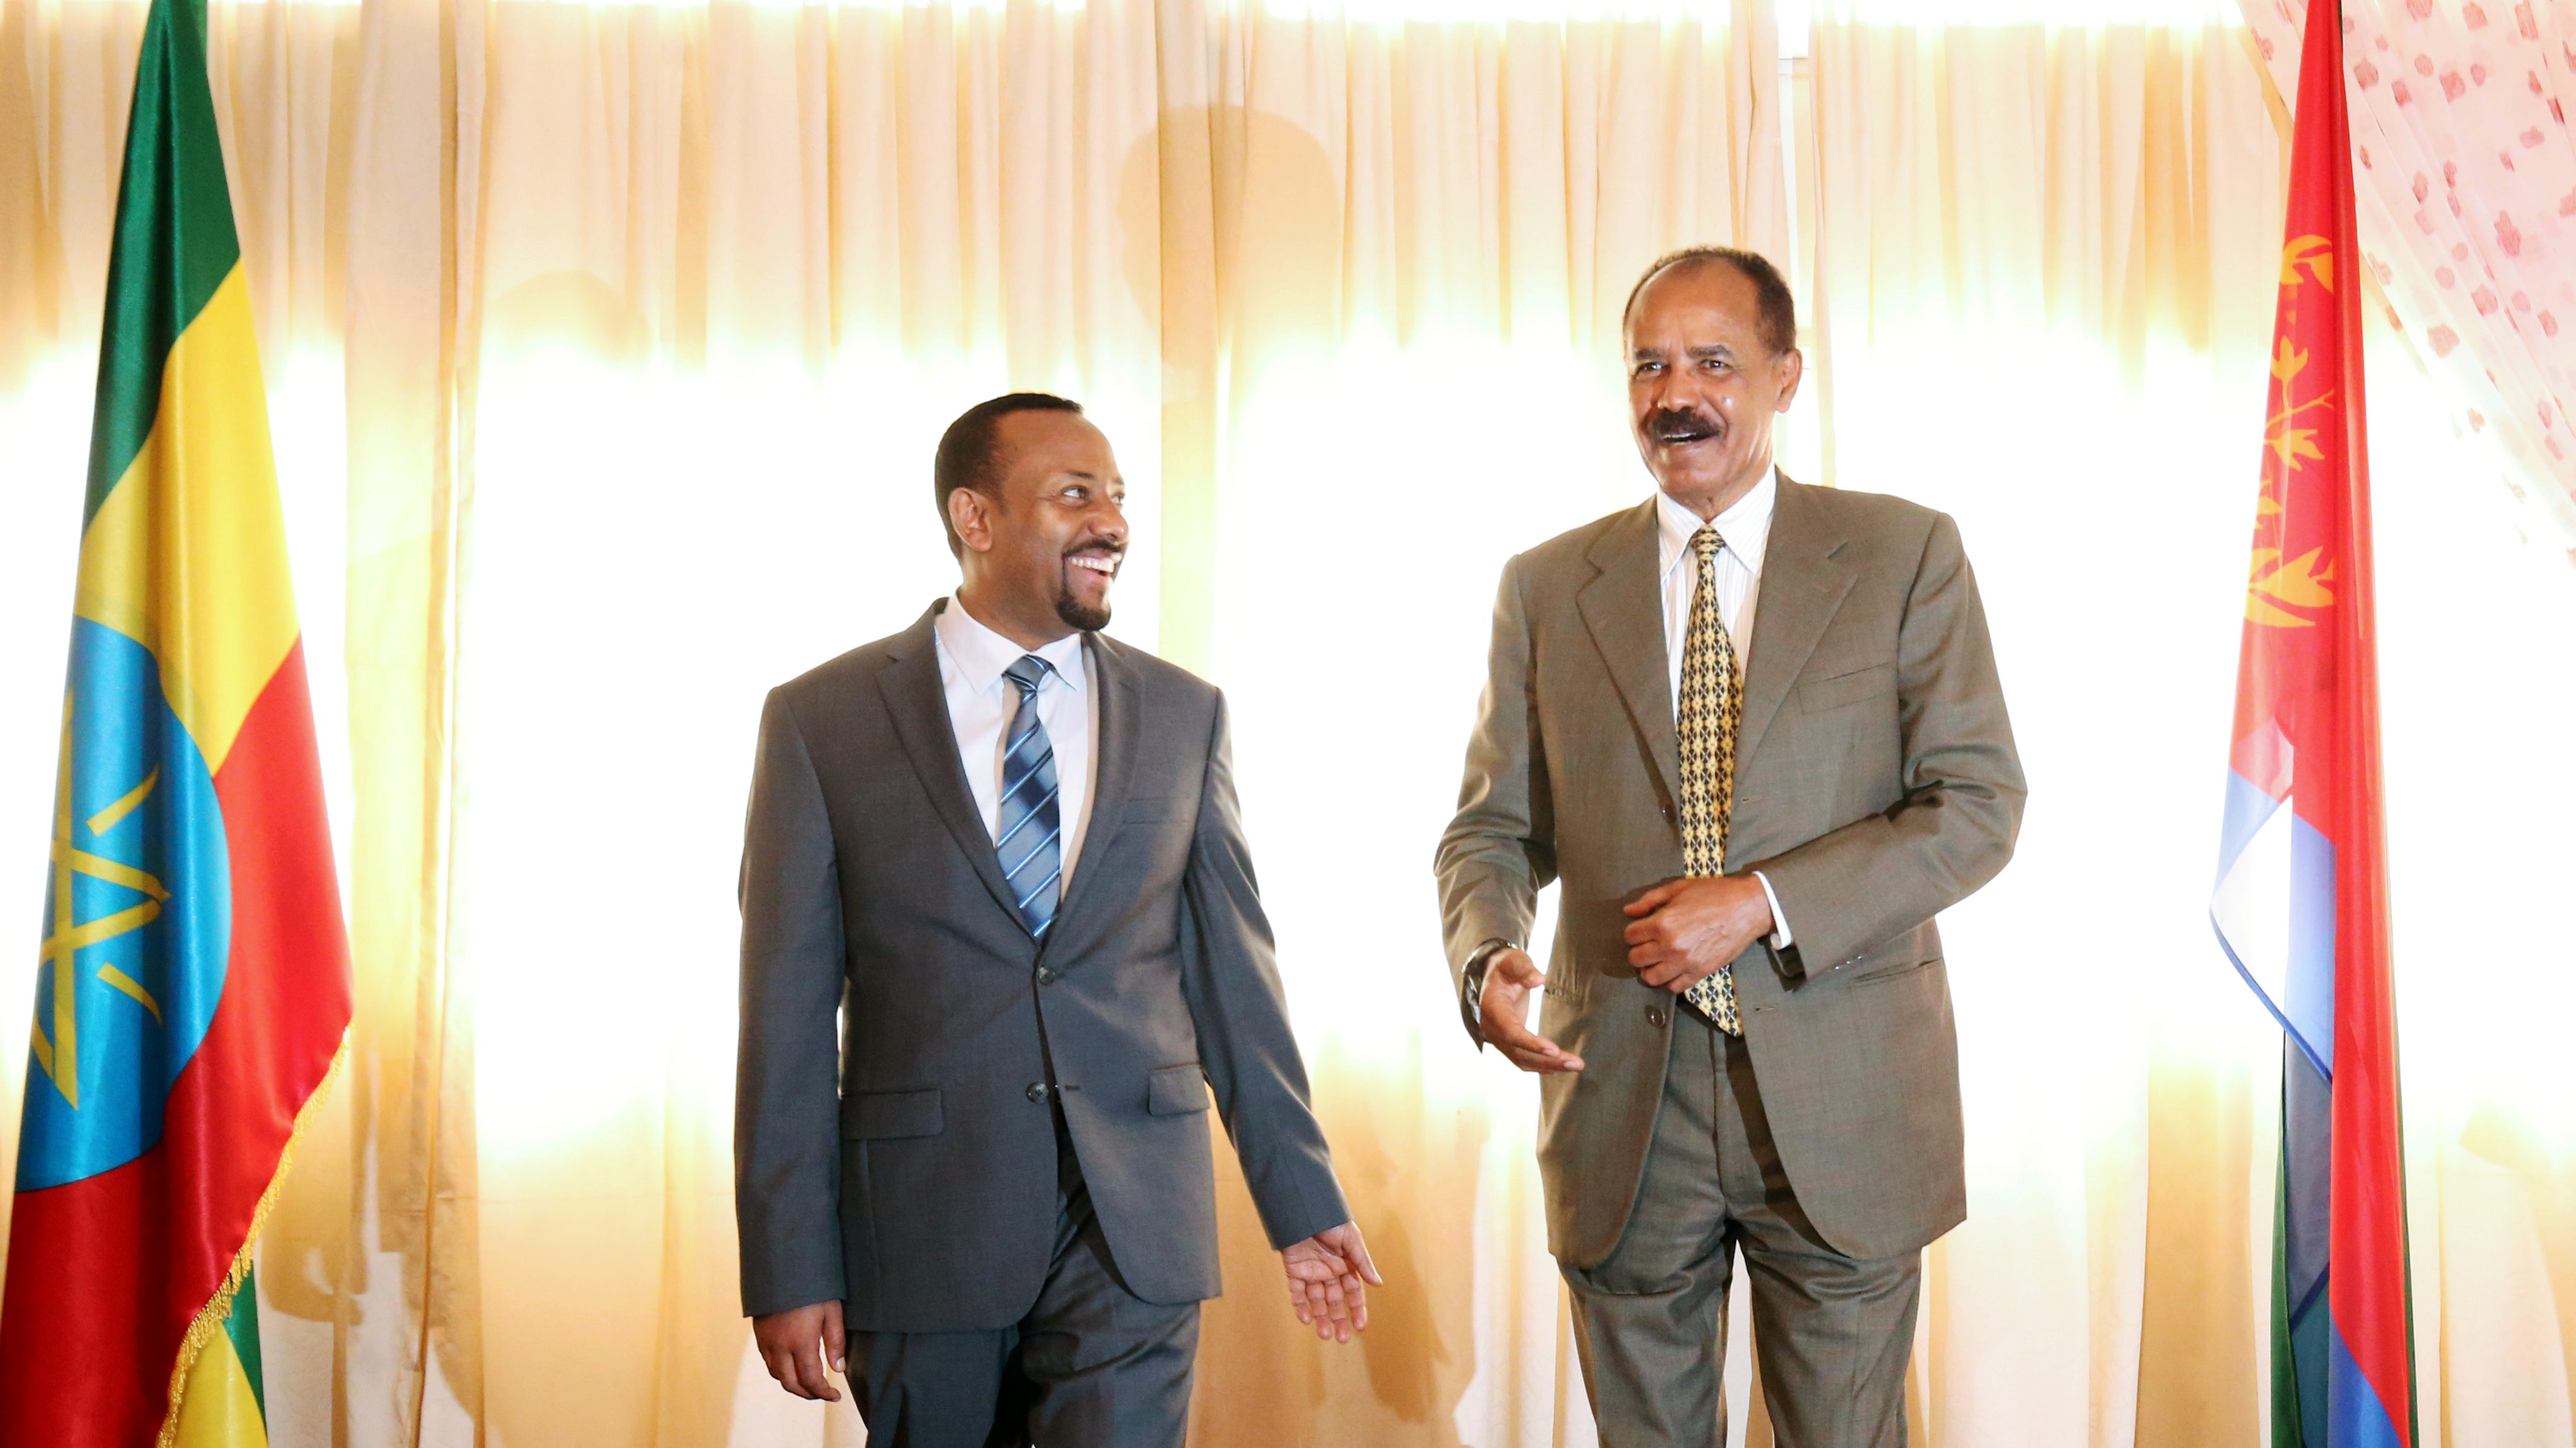 The Ethiopia-Eritrea Abiy Isaias peace accord glow is fading